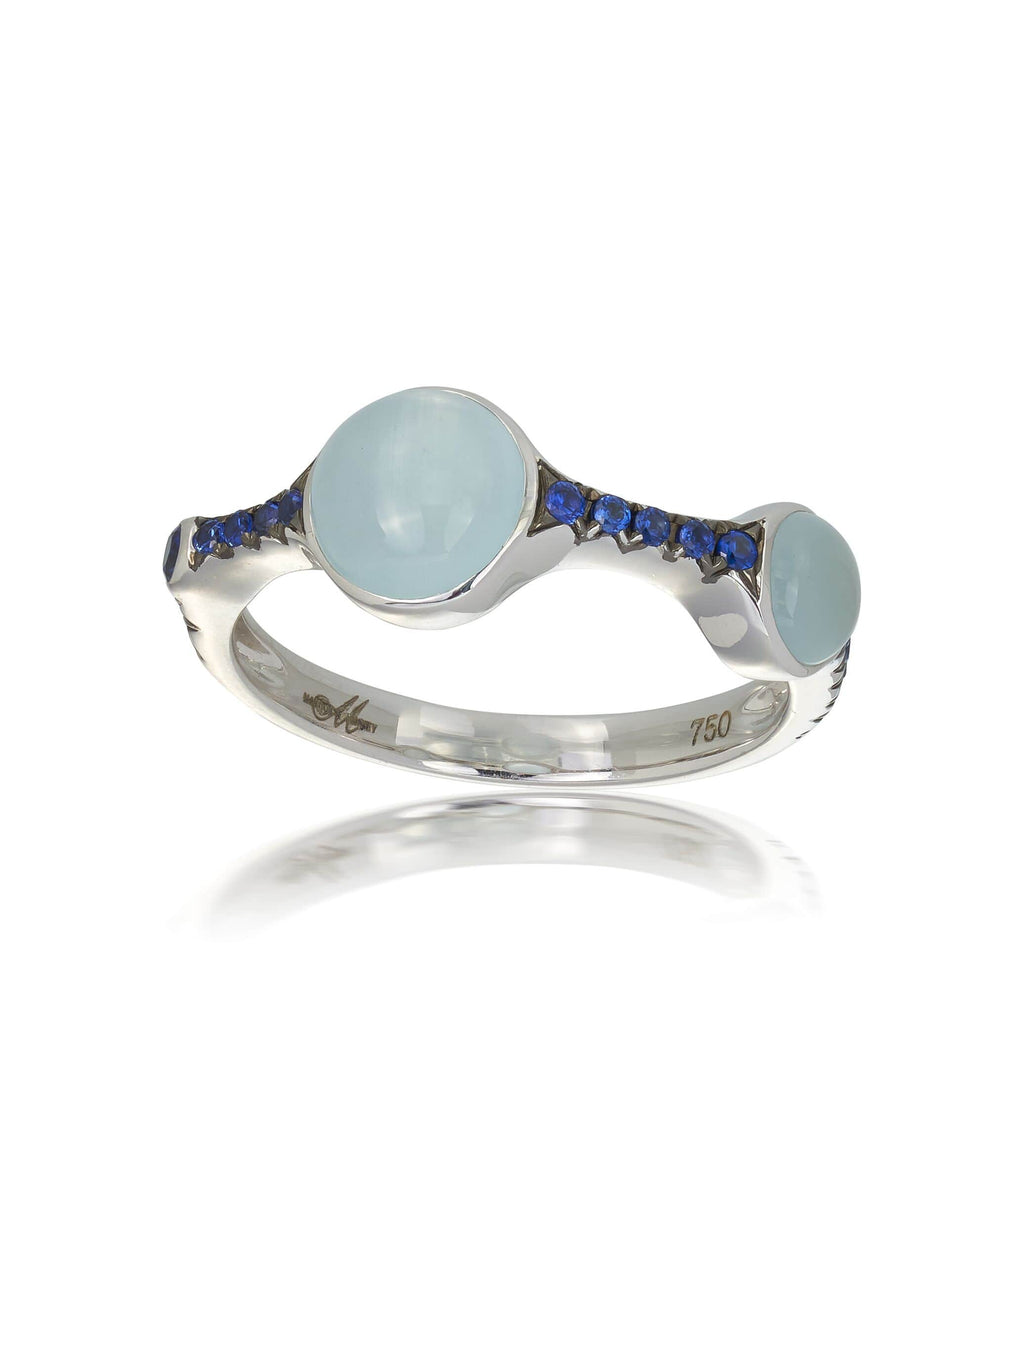 Aquamarine & Sapphire Dress Ring